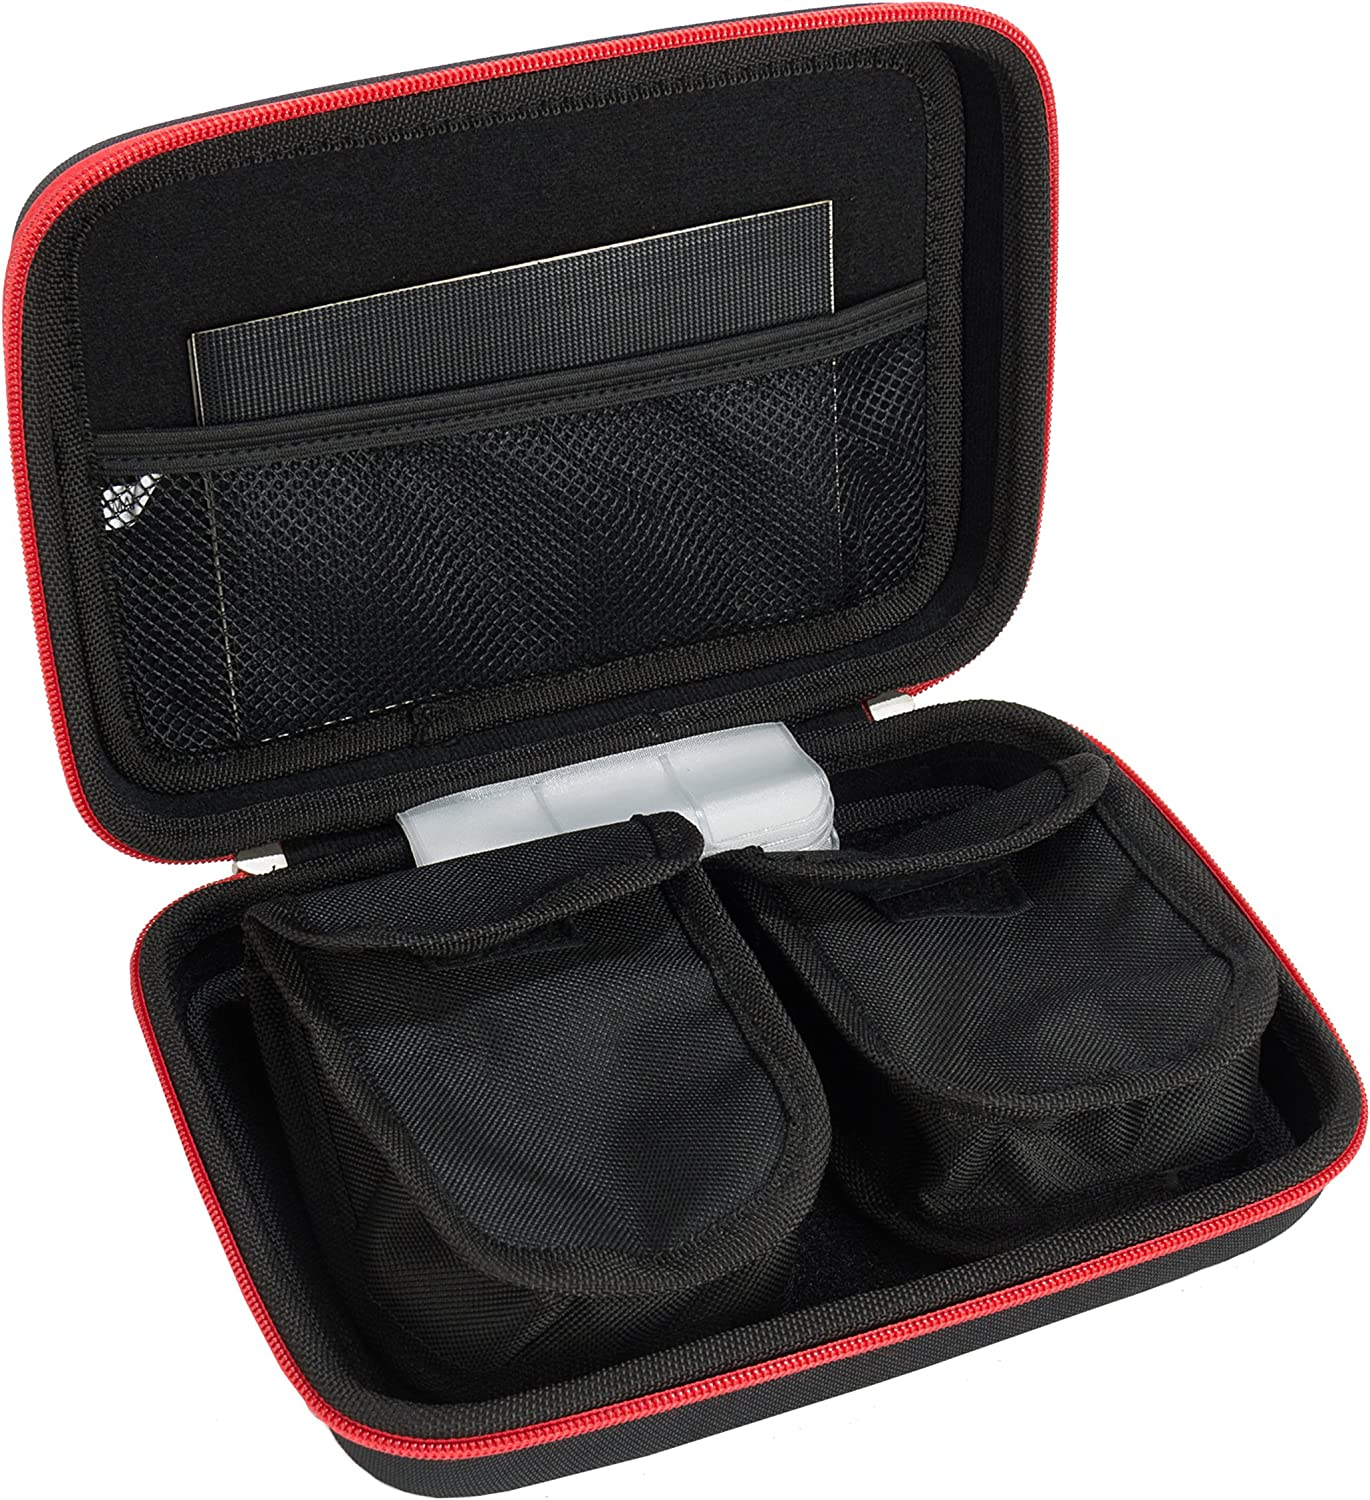 Harlin Carrying Case with Nylon Protective Hard Shell for DCIGNA Binoculars by Vangoddy Black, Grey